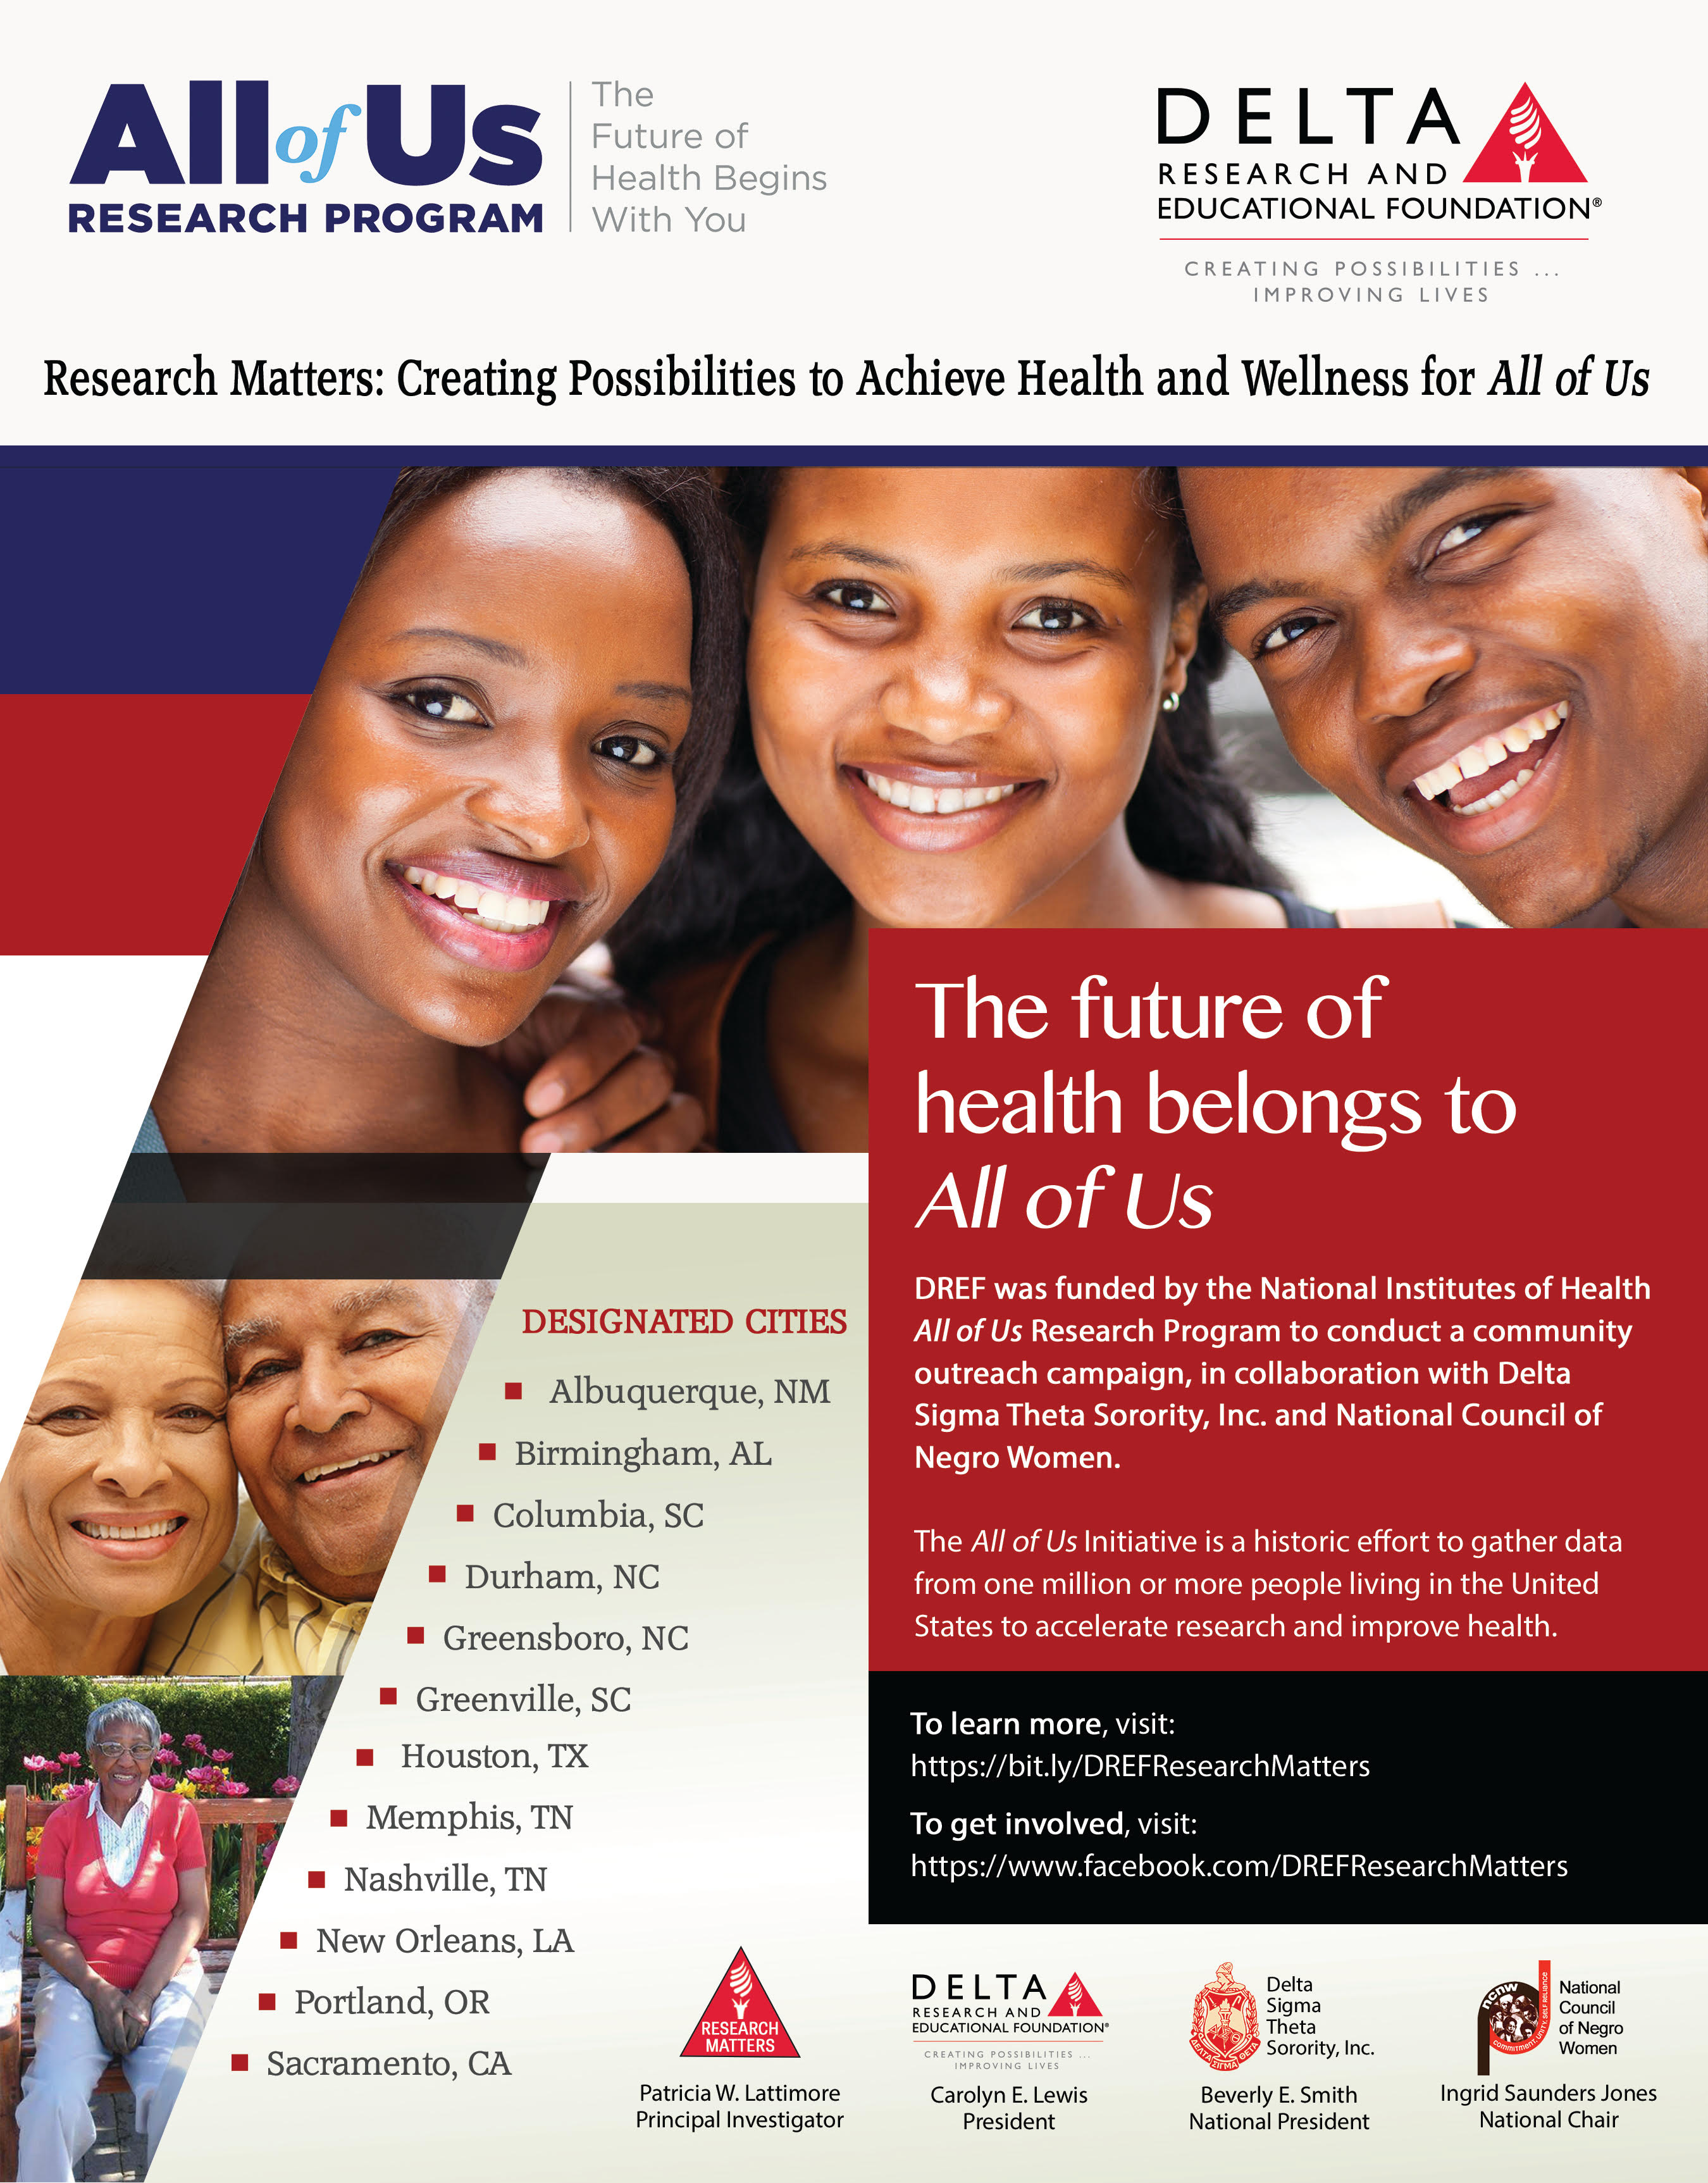 The Delta Research and Educational Foundation (DREF) joins NIH in launching the All of Us Research Program to advance precision medicine